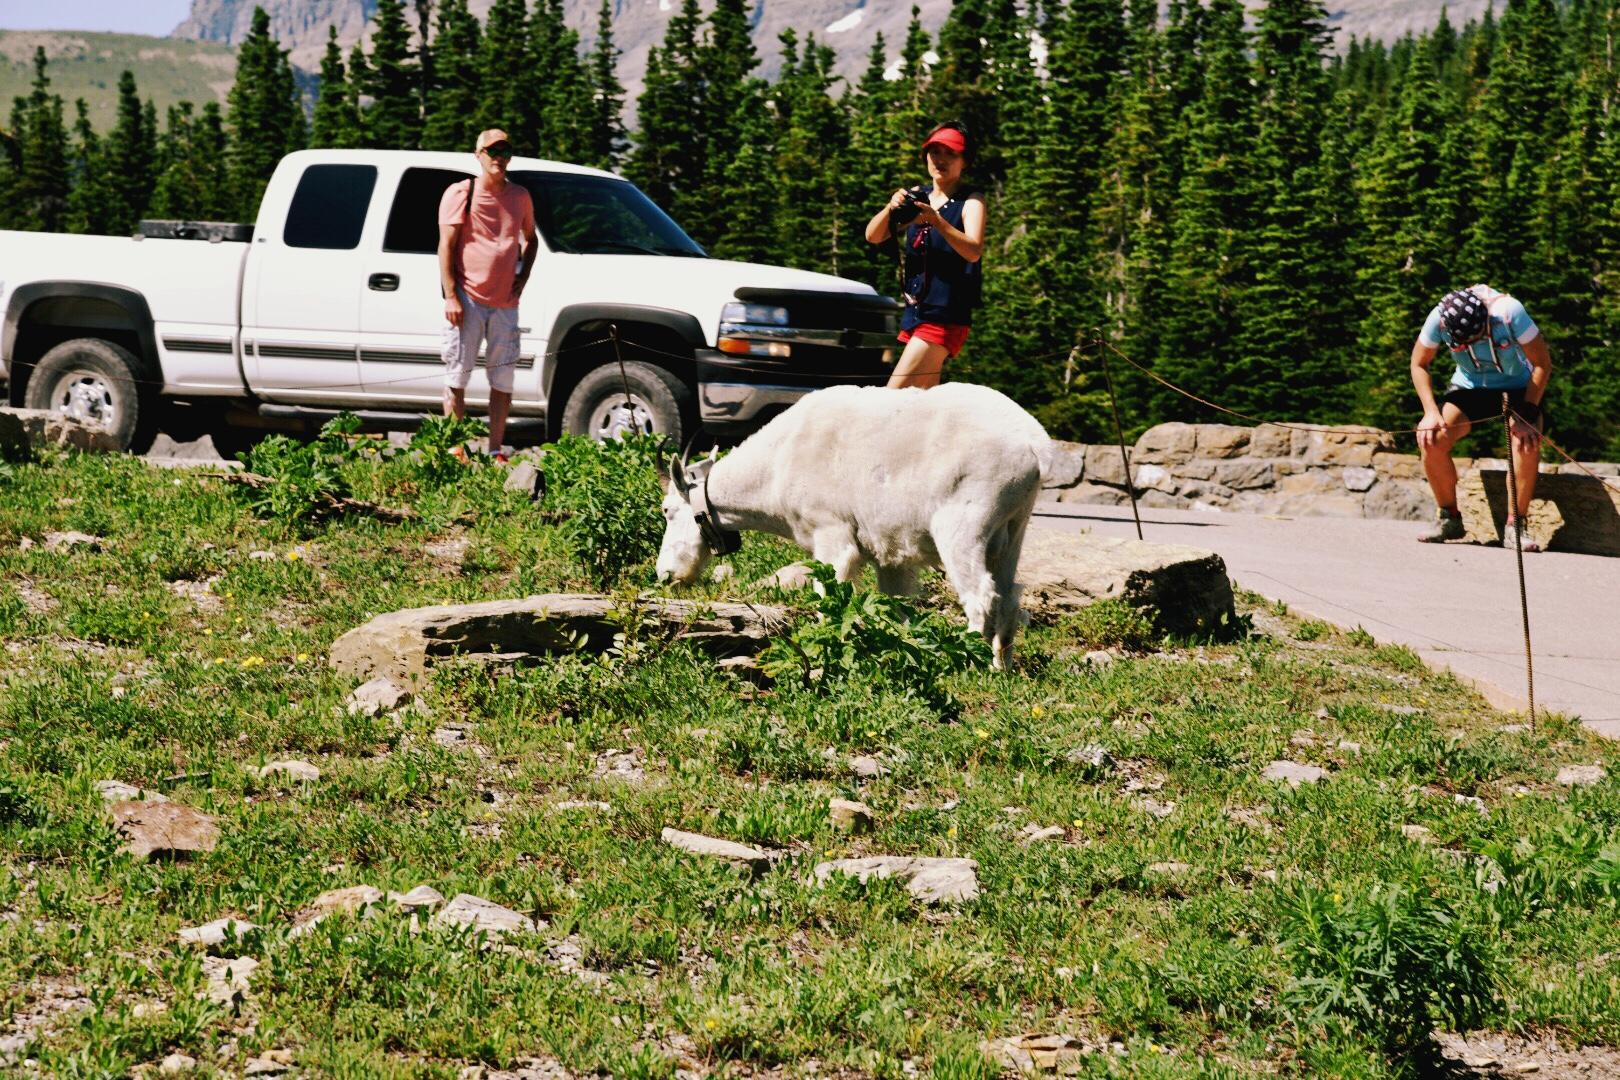 Logan Pass hosts a large visitor's center with rangers, informational signs and a gift shop. The best was spotting mountain goats in the distance and then stumbling upon one at the shuttle stop. (Image: Rebecca Mongrain/Seattle Refined)